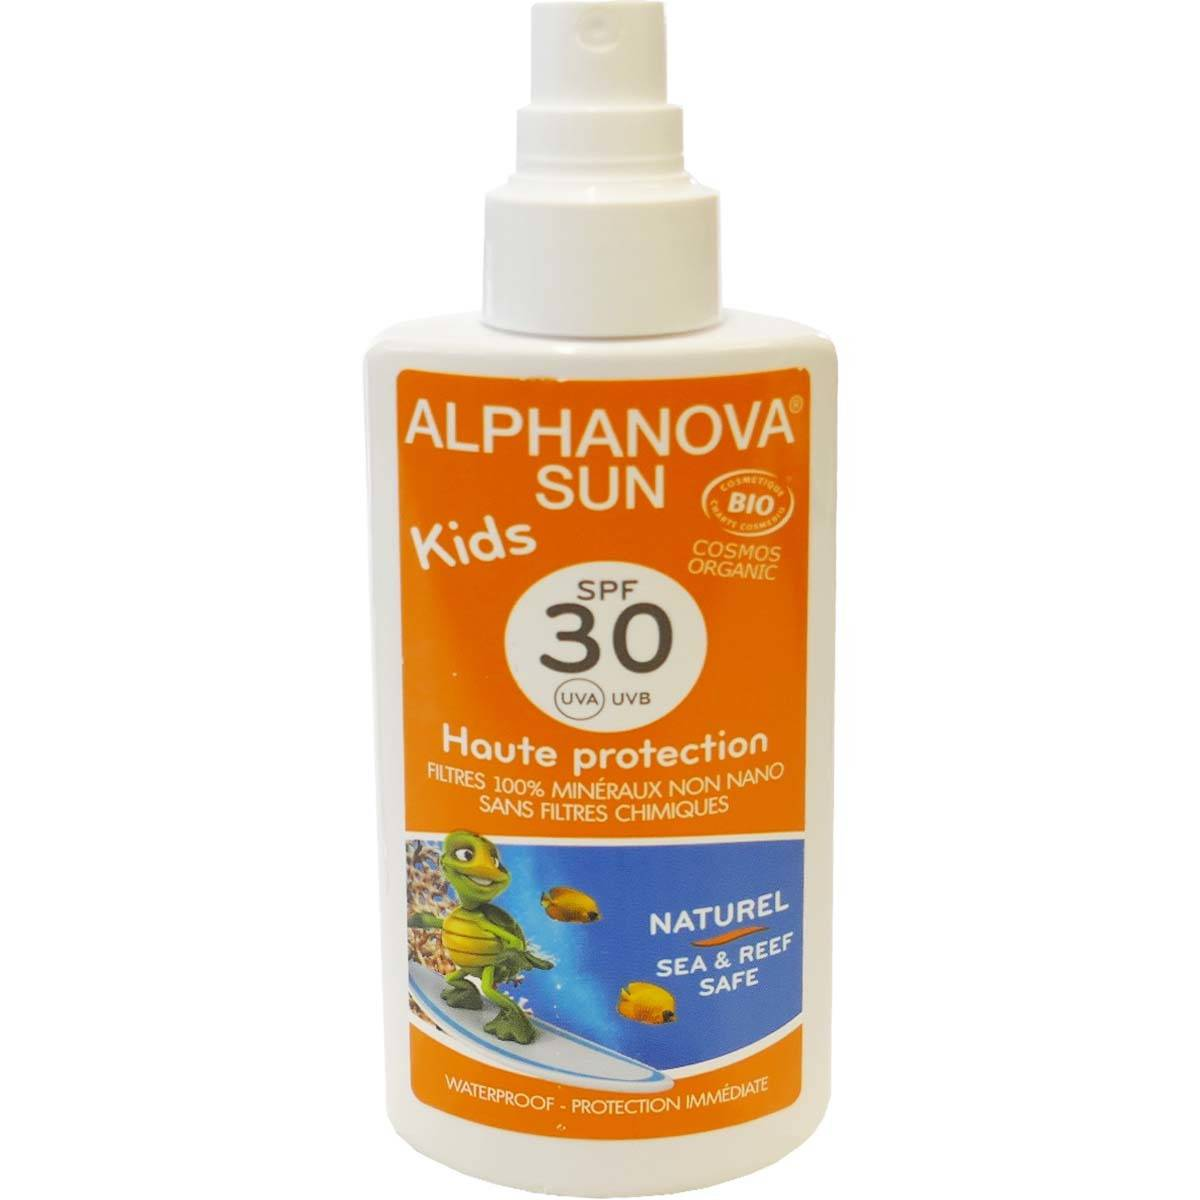 Alphanova sun kids spf 30 naturel bio